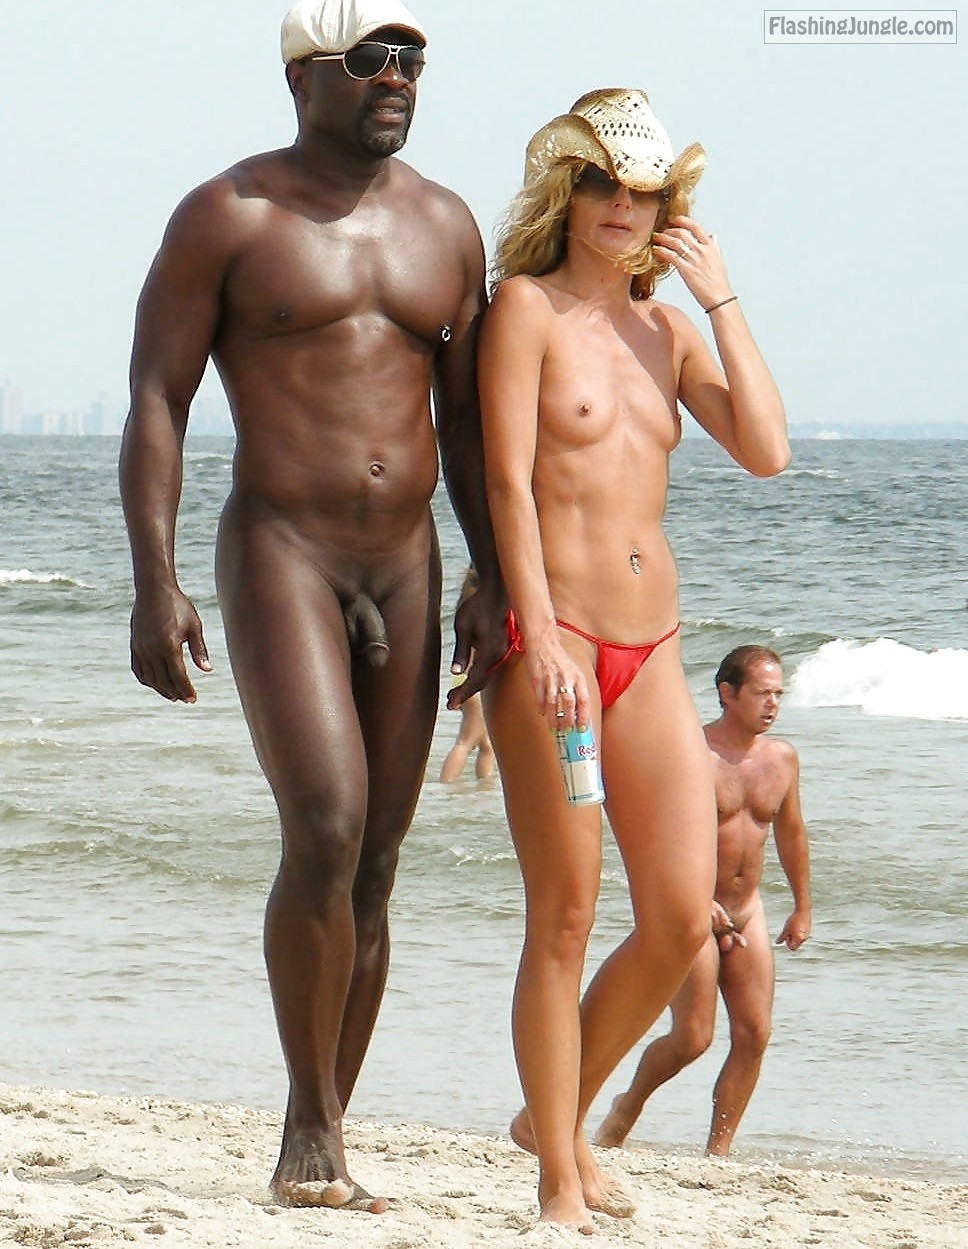 Naked Black Guy And Topless Blonde Nude Beach Pics, Voyeur -2923